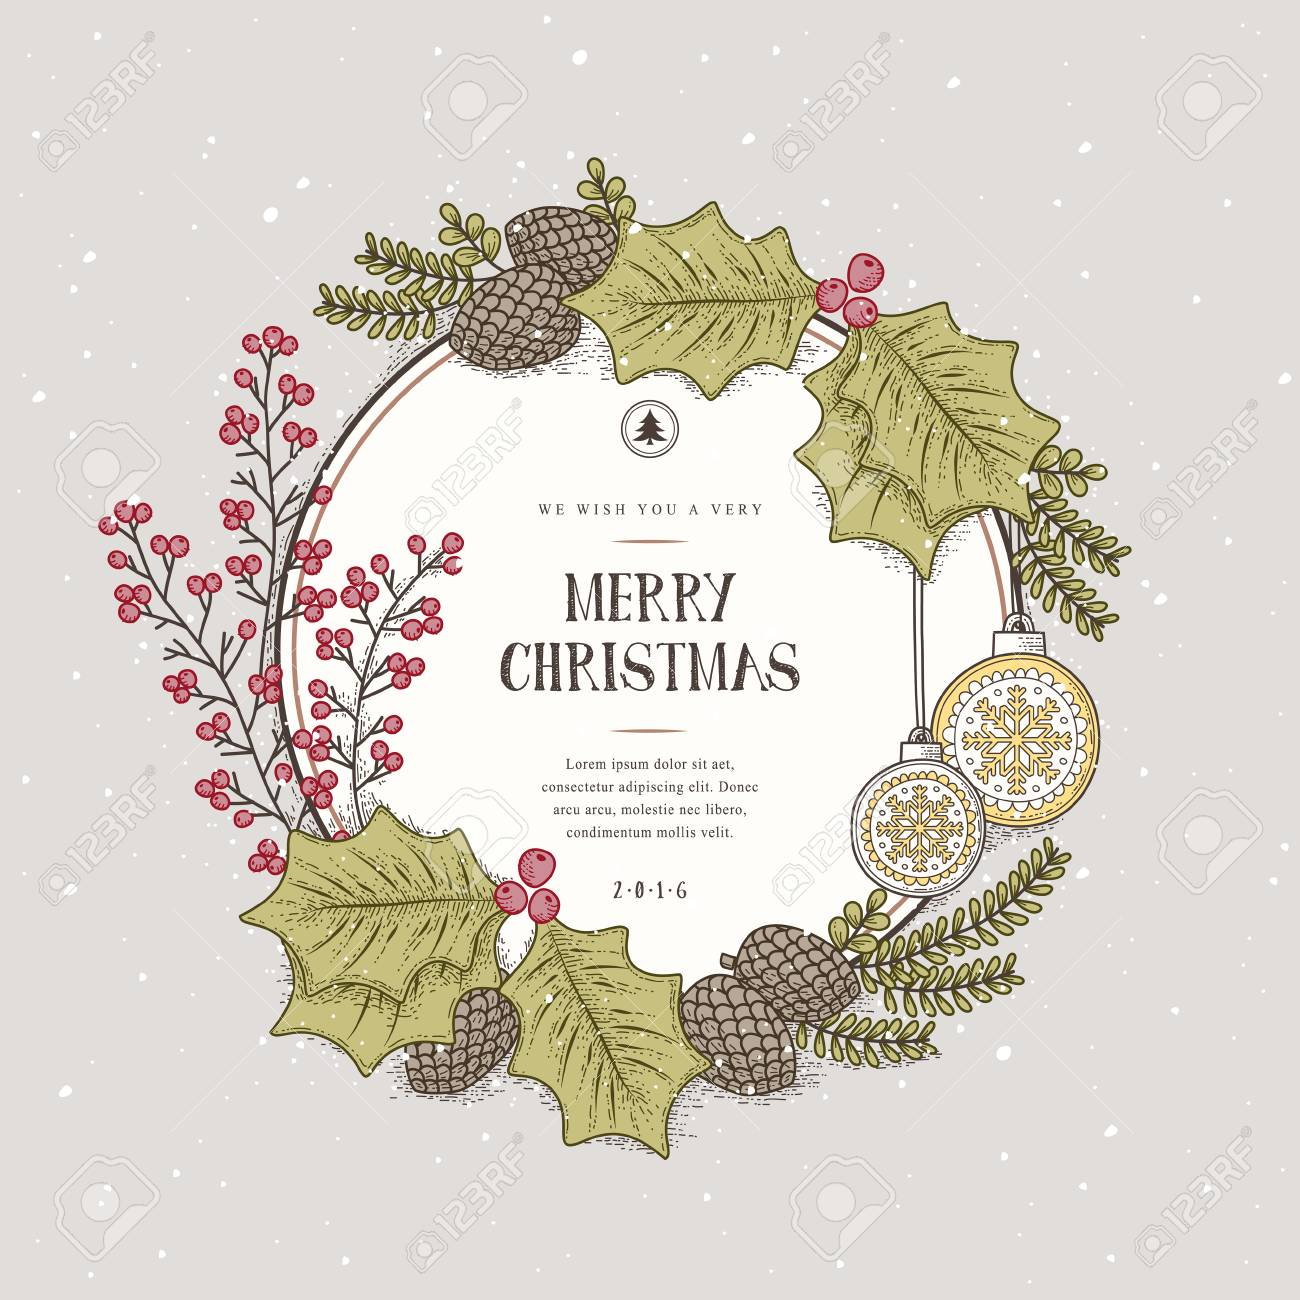 Lovely Merry Christmas Wreath Card Design In Hand Drawn Style